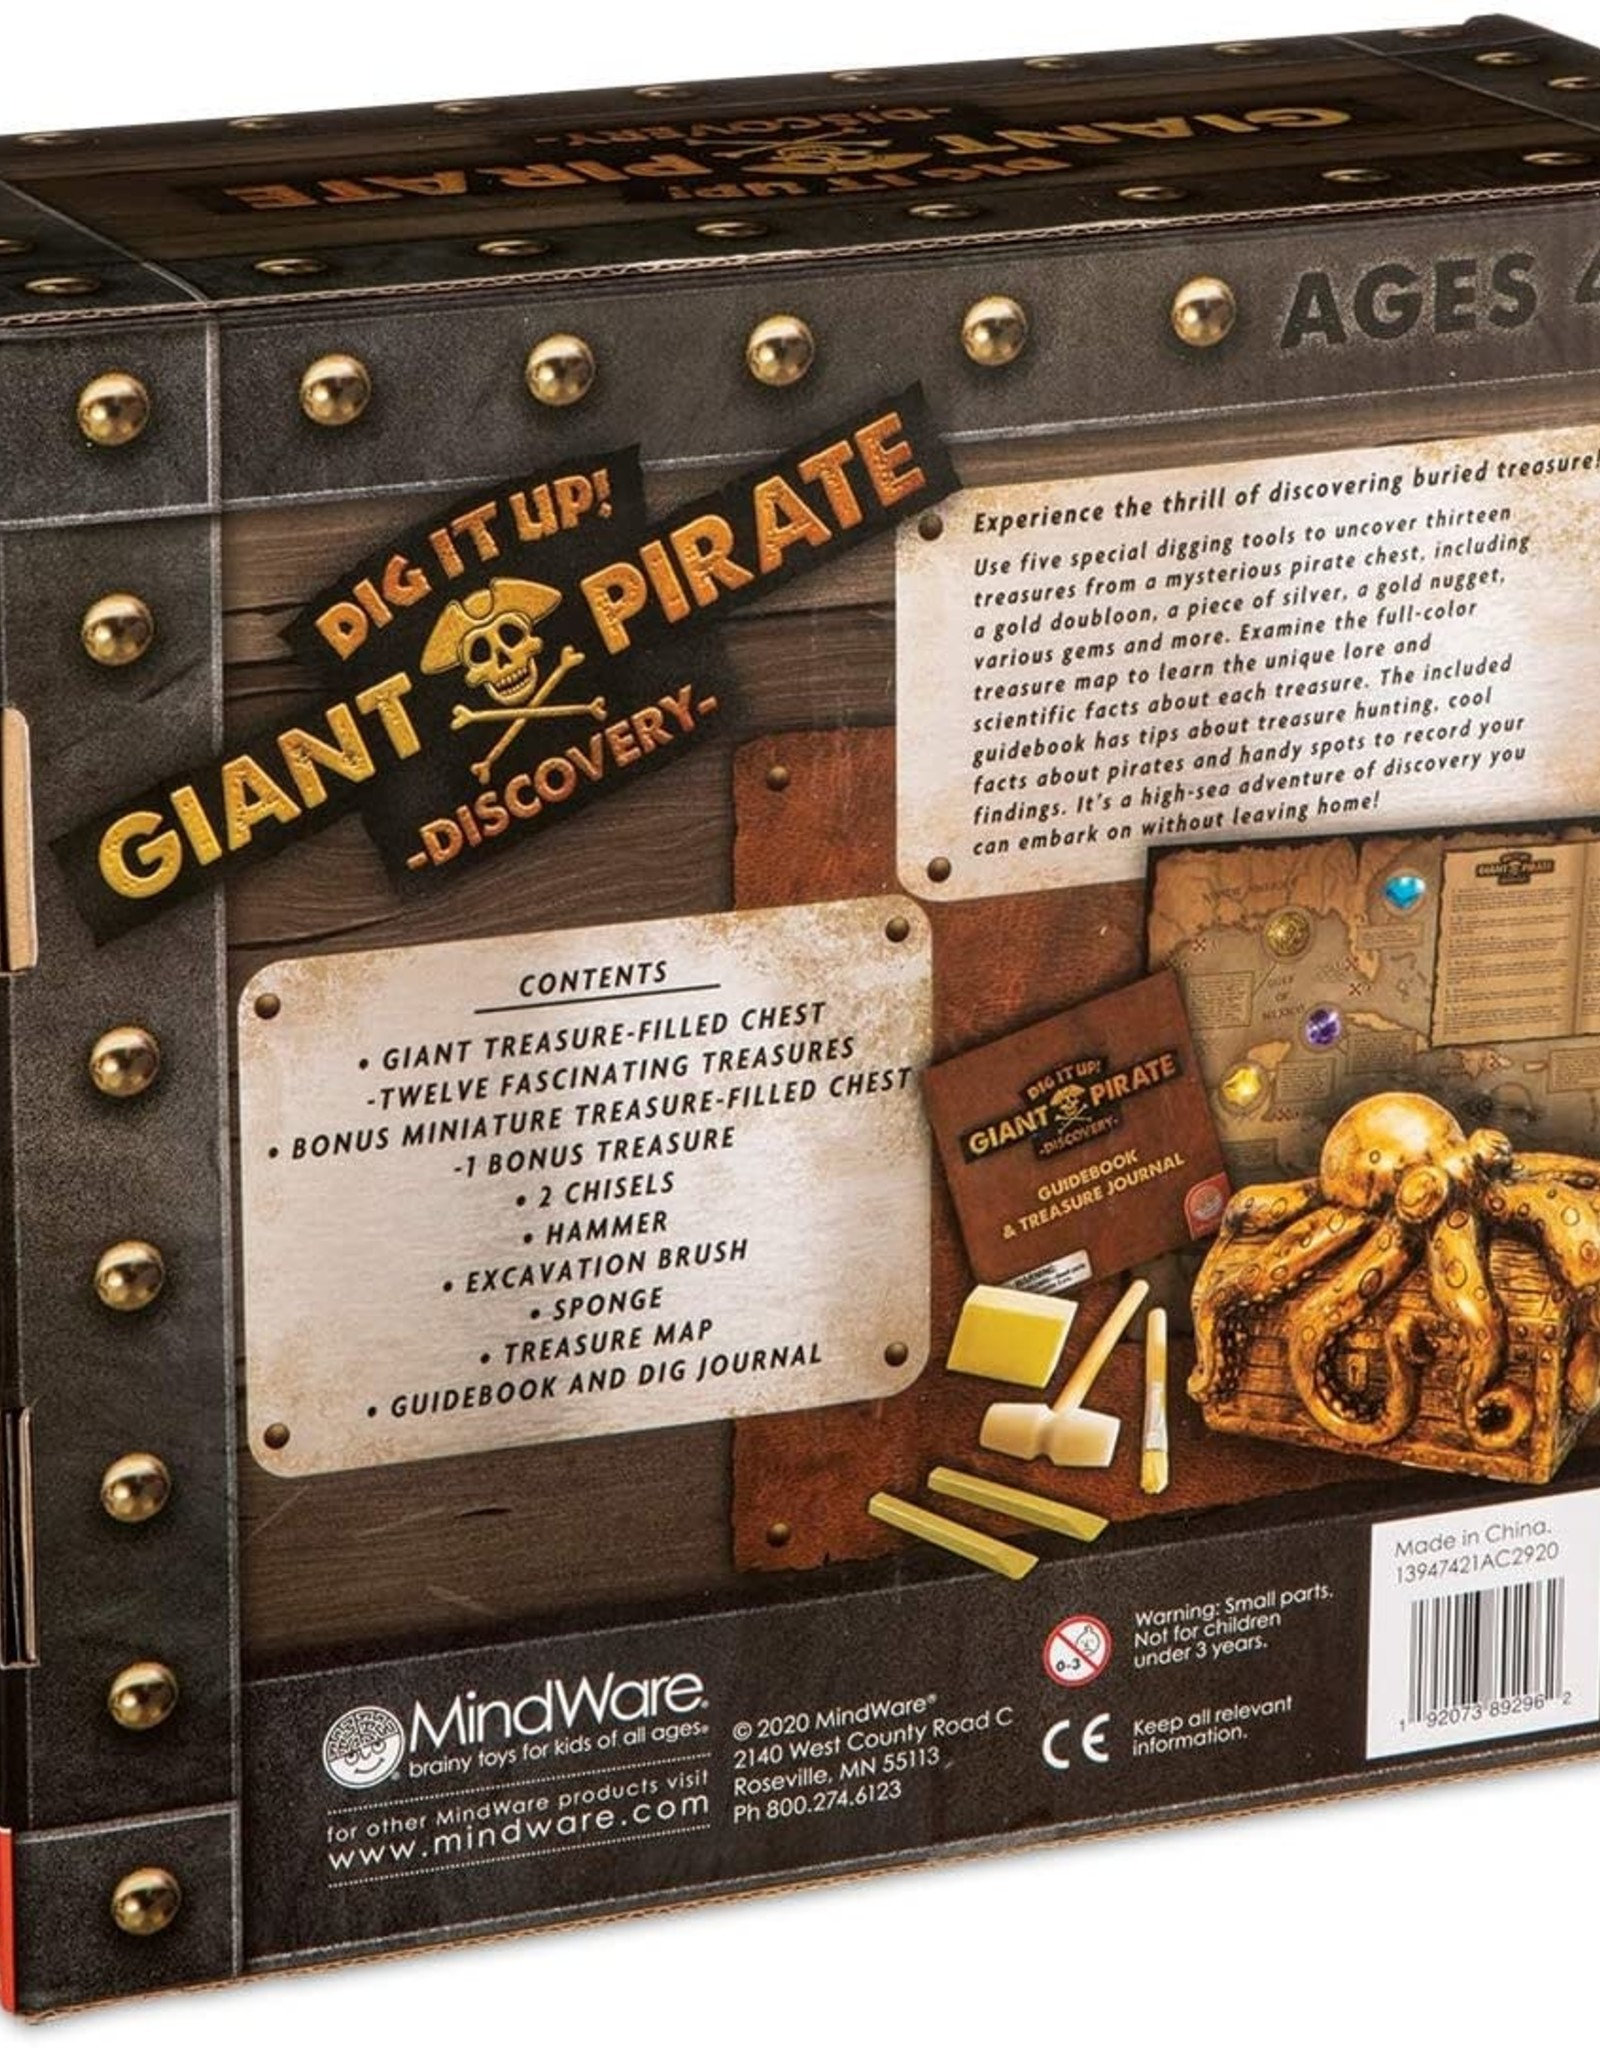 Dig It Up!: Pirate Discovery